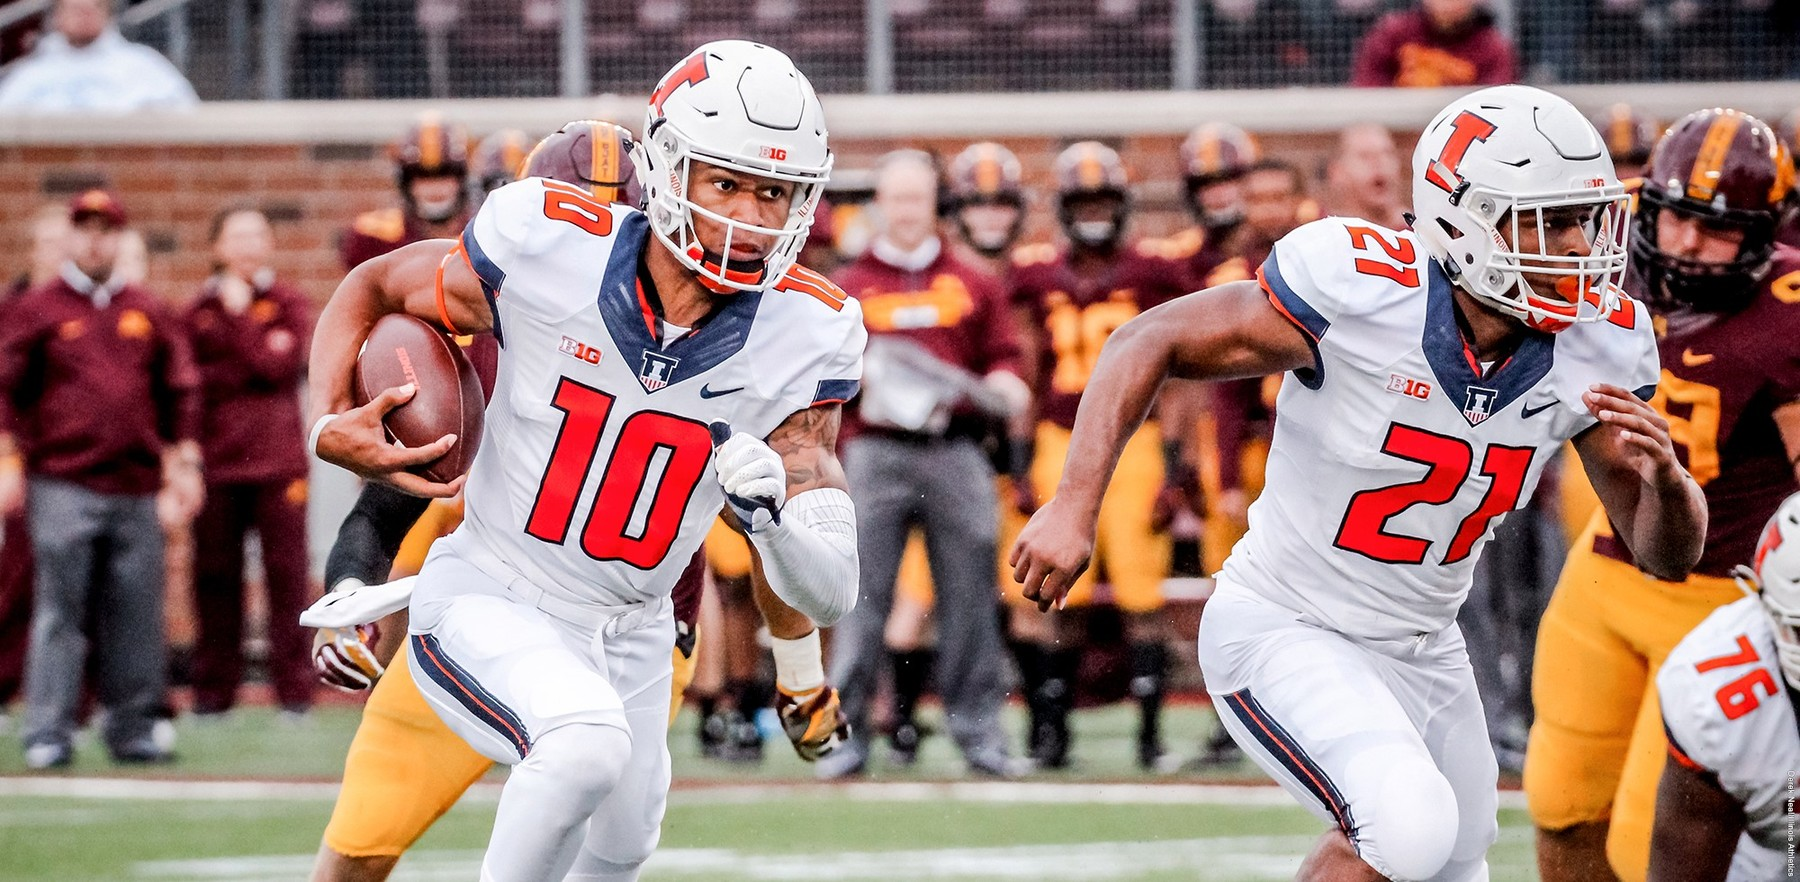 Freshman quarterback Cam Thomas runs the ball during his first appearance with the Illini